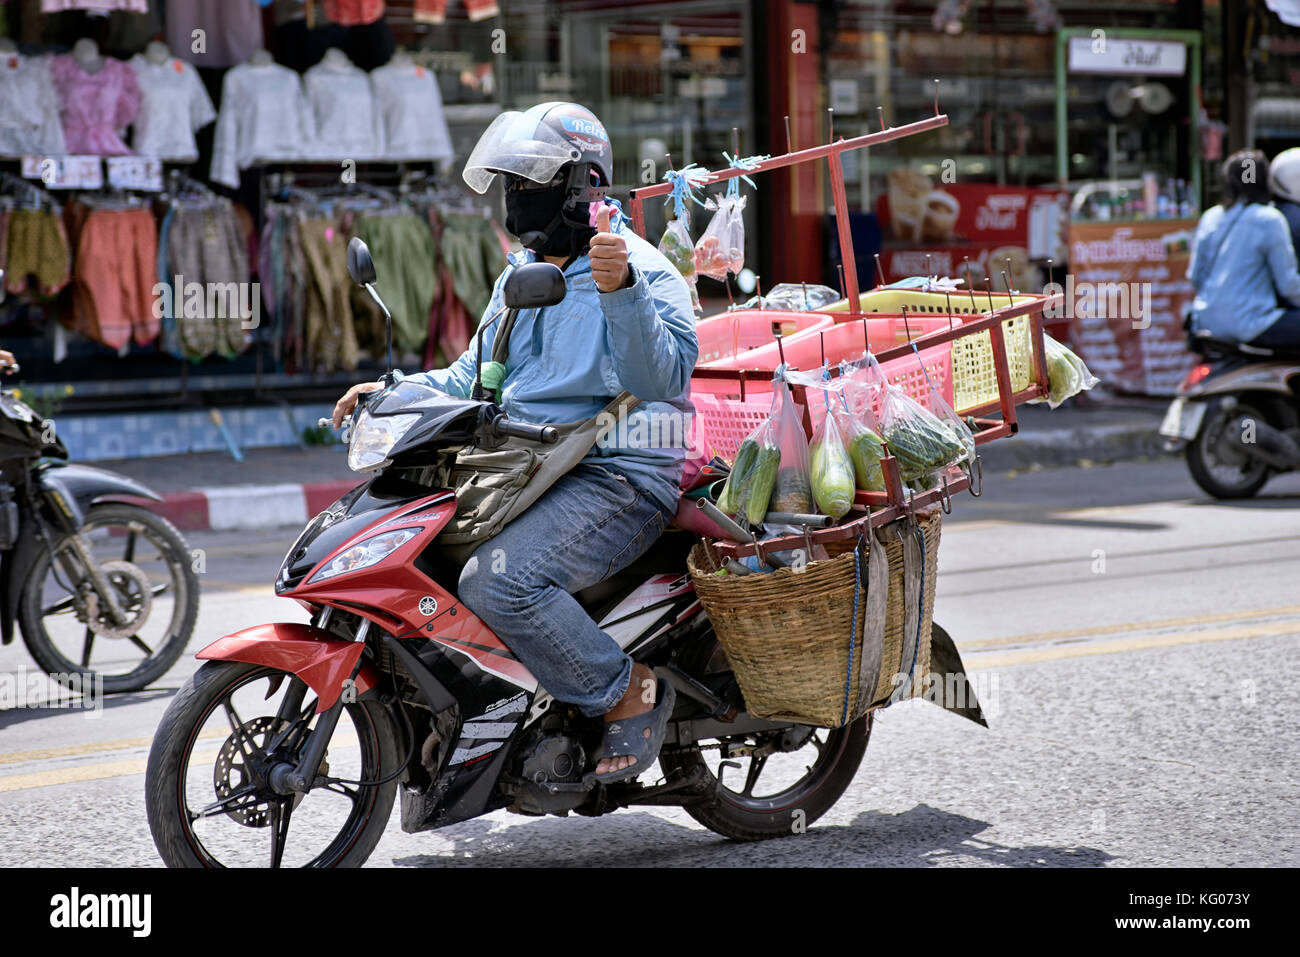 Thailand street food vendor delivering food on his motorcycle. Southeast Asia. - Stock Image